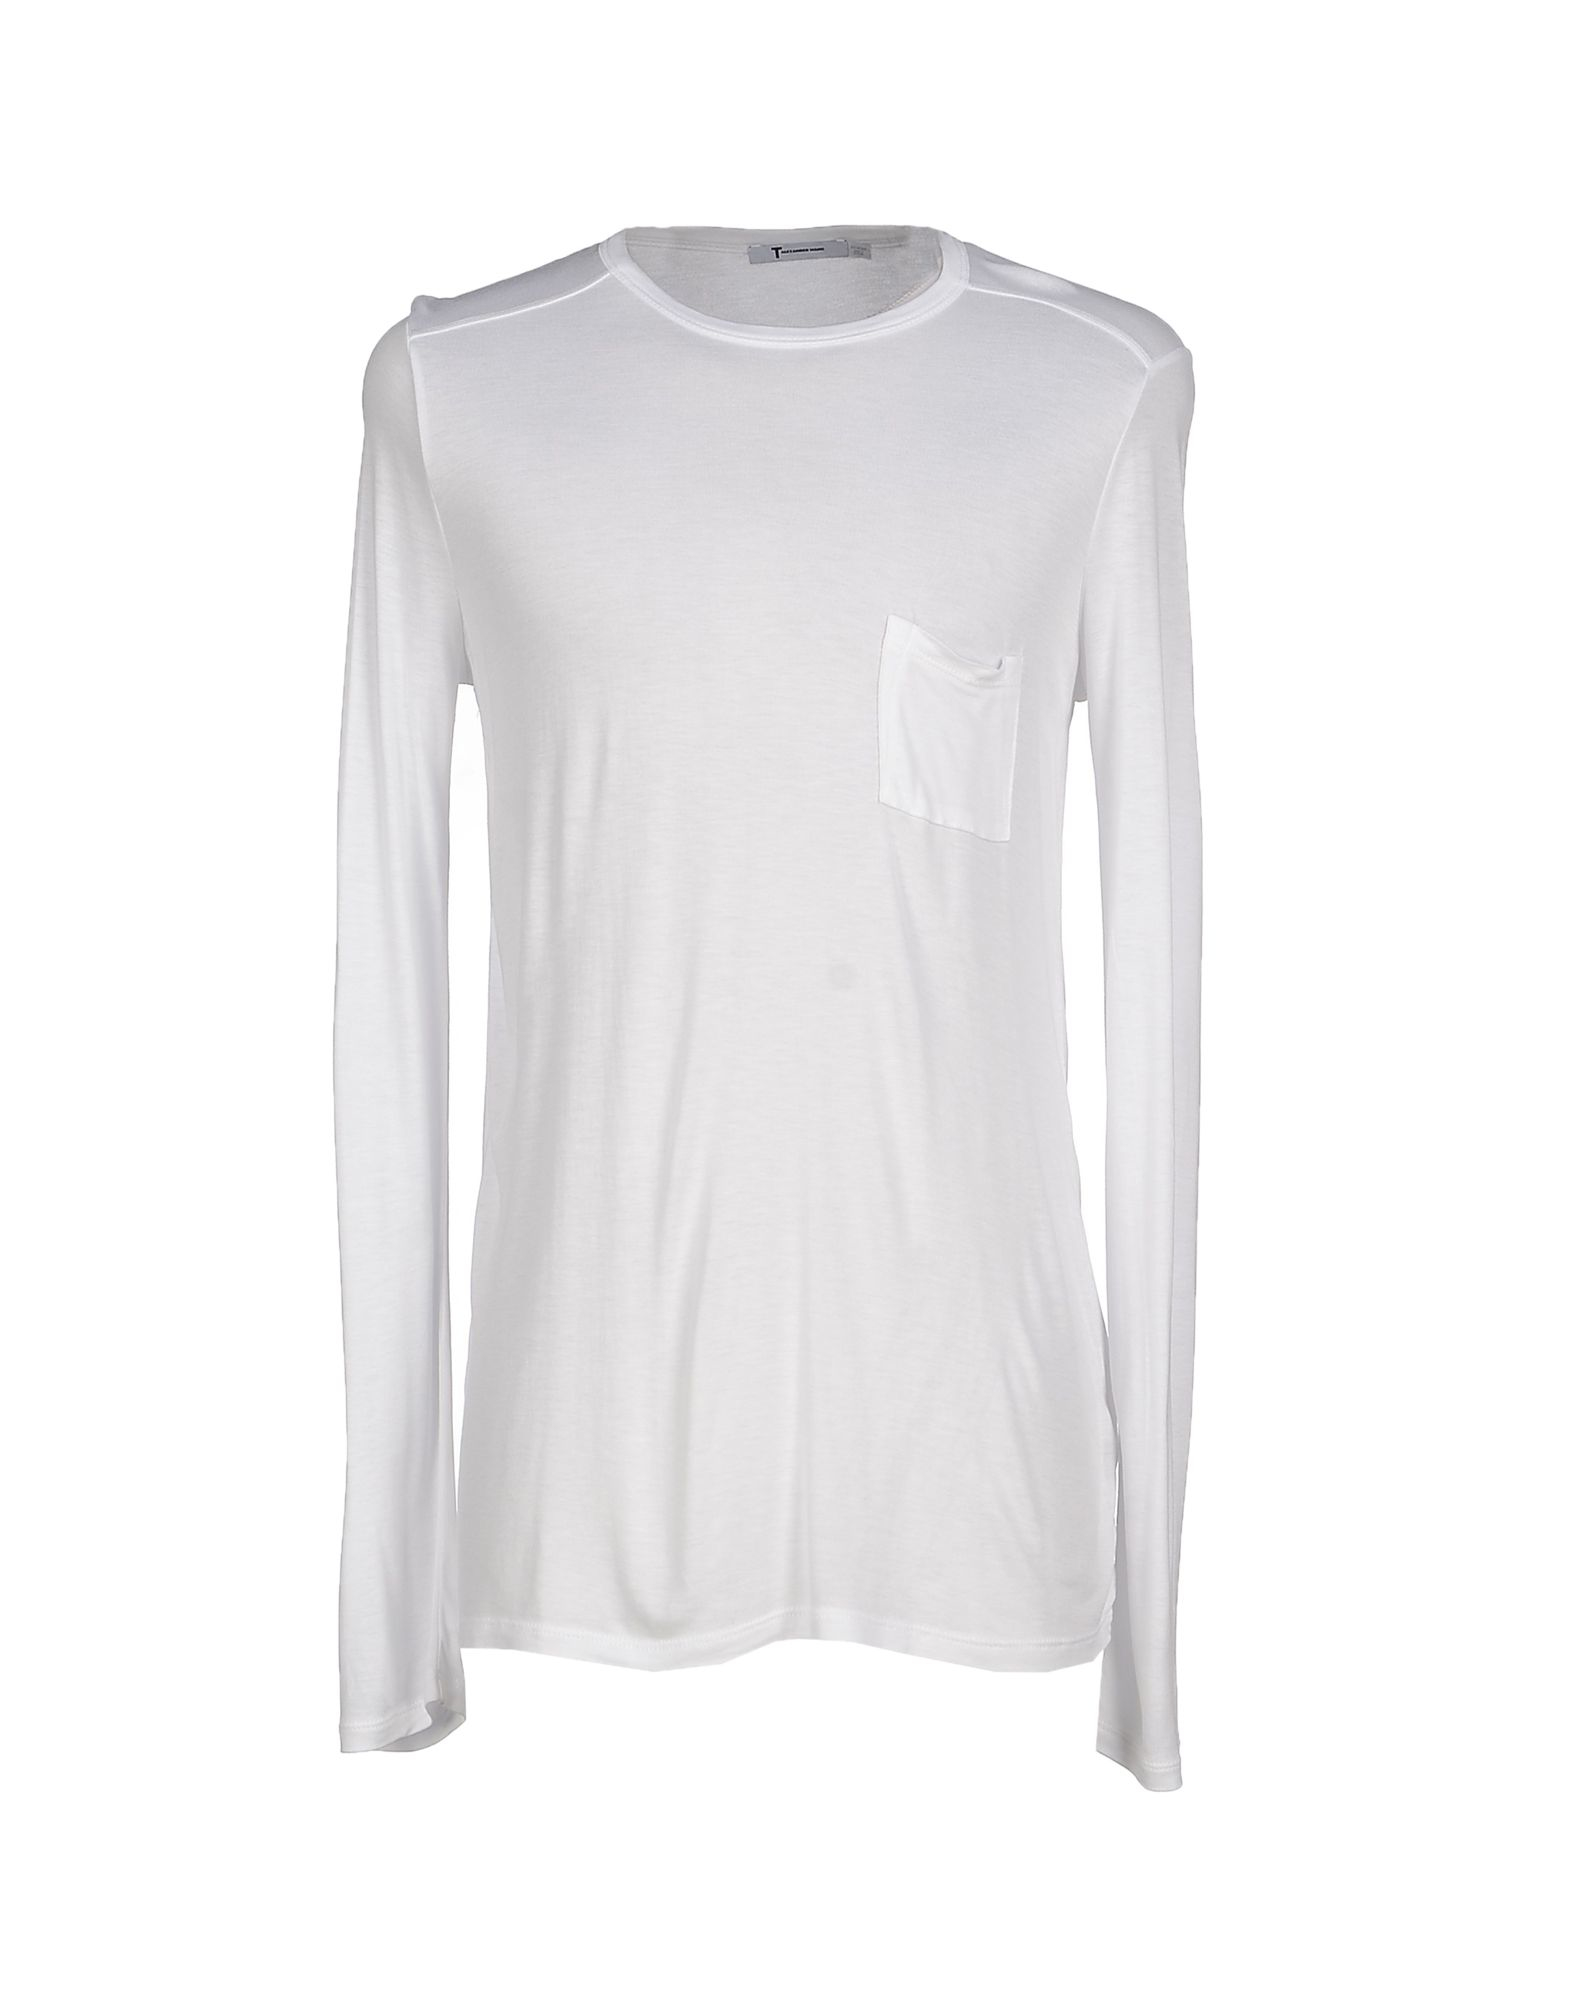 T by alexander wang t shirt in white for men lyst for T by alexander wang t shirt